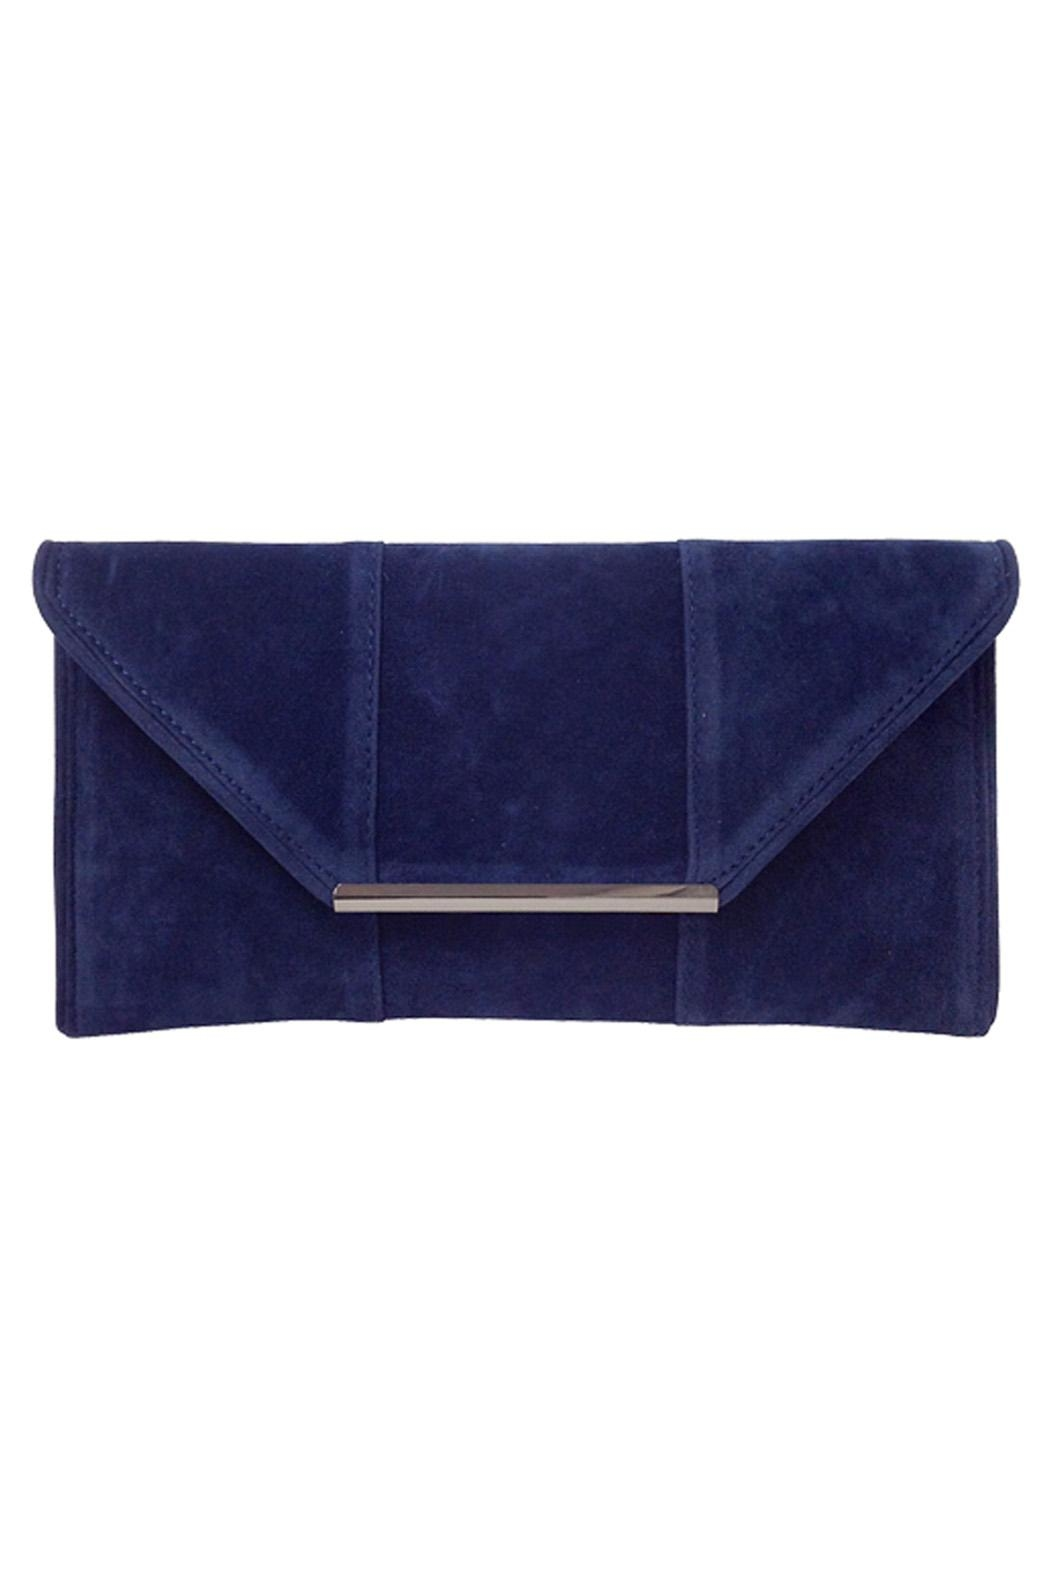 Wild Lilies Jewelry  Velvet Envelope Clutch - Front Cropped Image